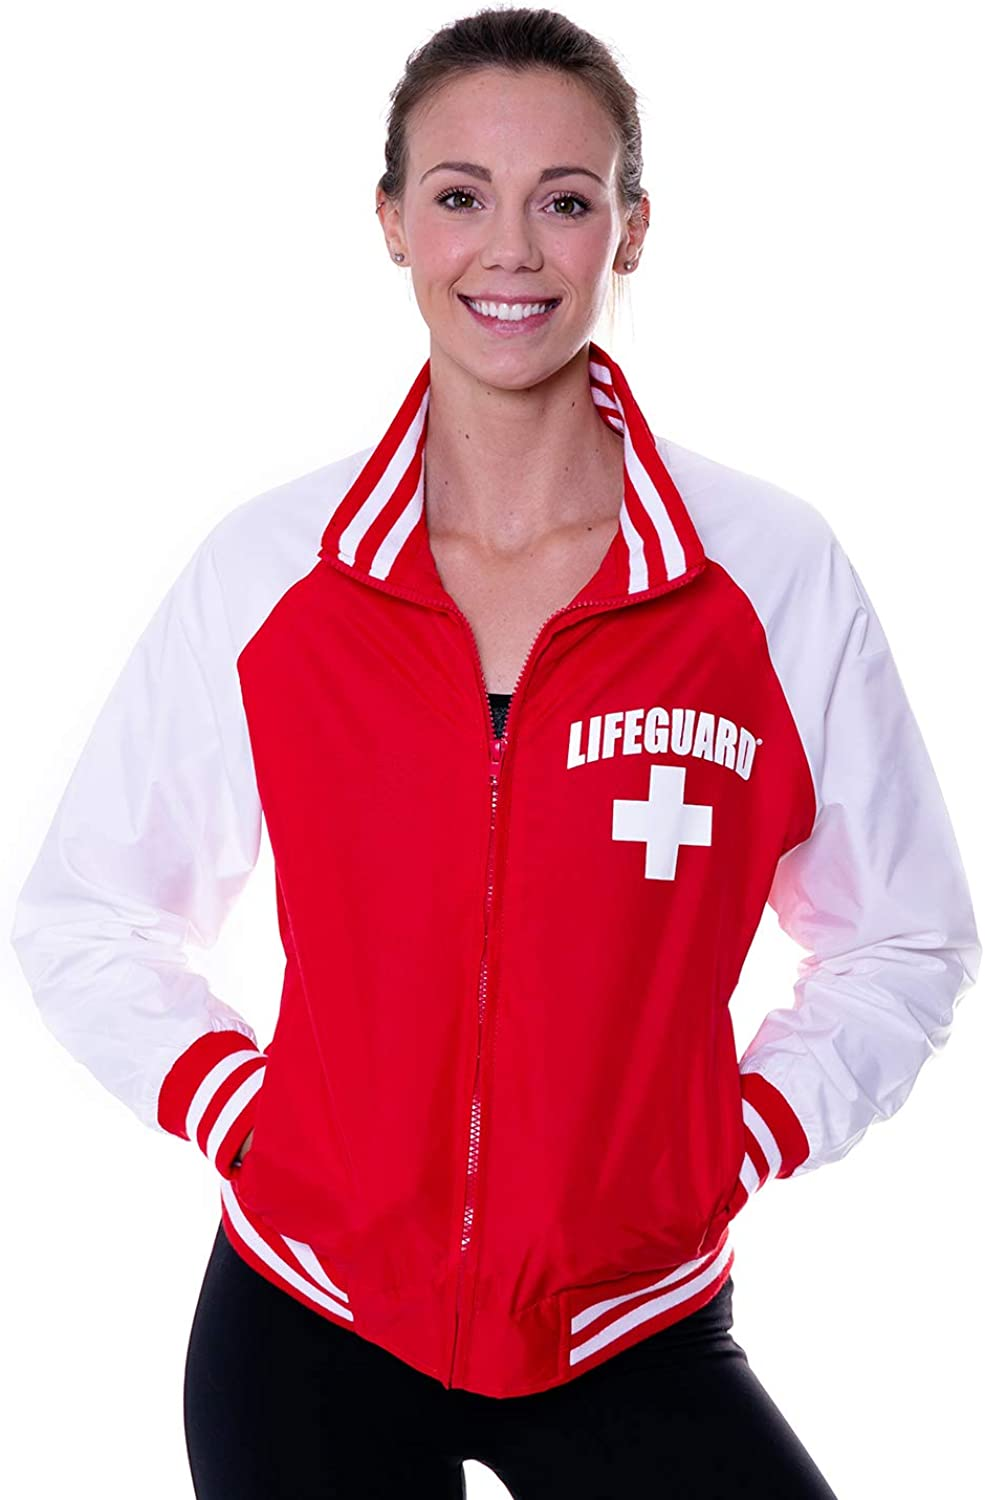 LIFEGUARD Officially Licensed Womens Varsity Championship Raglan Jacket Water Resistant and Wind Breaker Zipper Up…